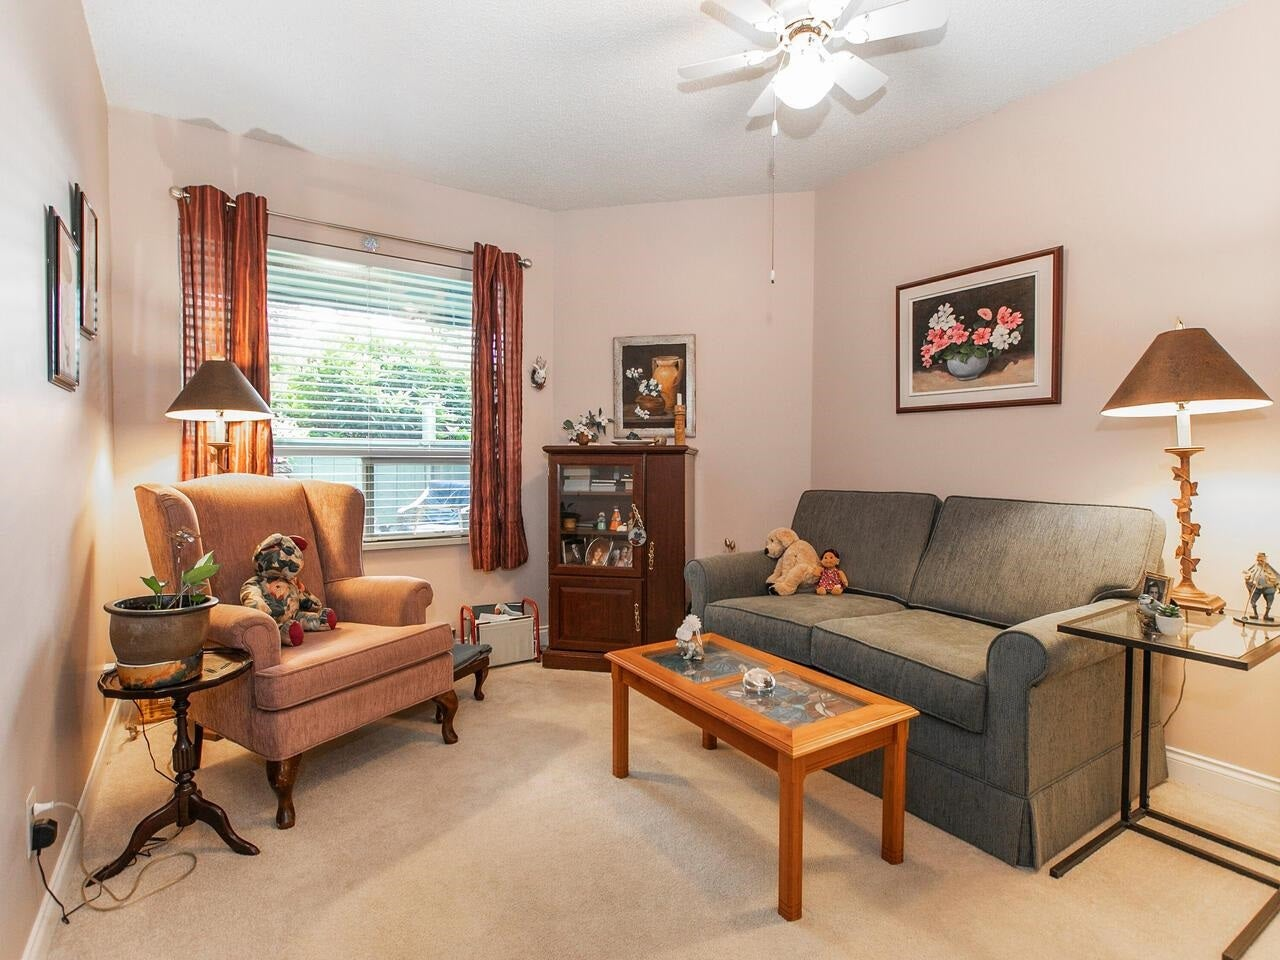 104 2800 CHESTERFIELD AVENUE - Upper Lonsdale Apartment/Condo for sale, 2 Bedrooms (R2603260) - #19